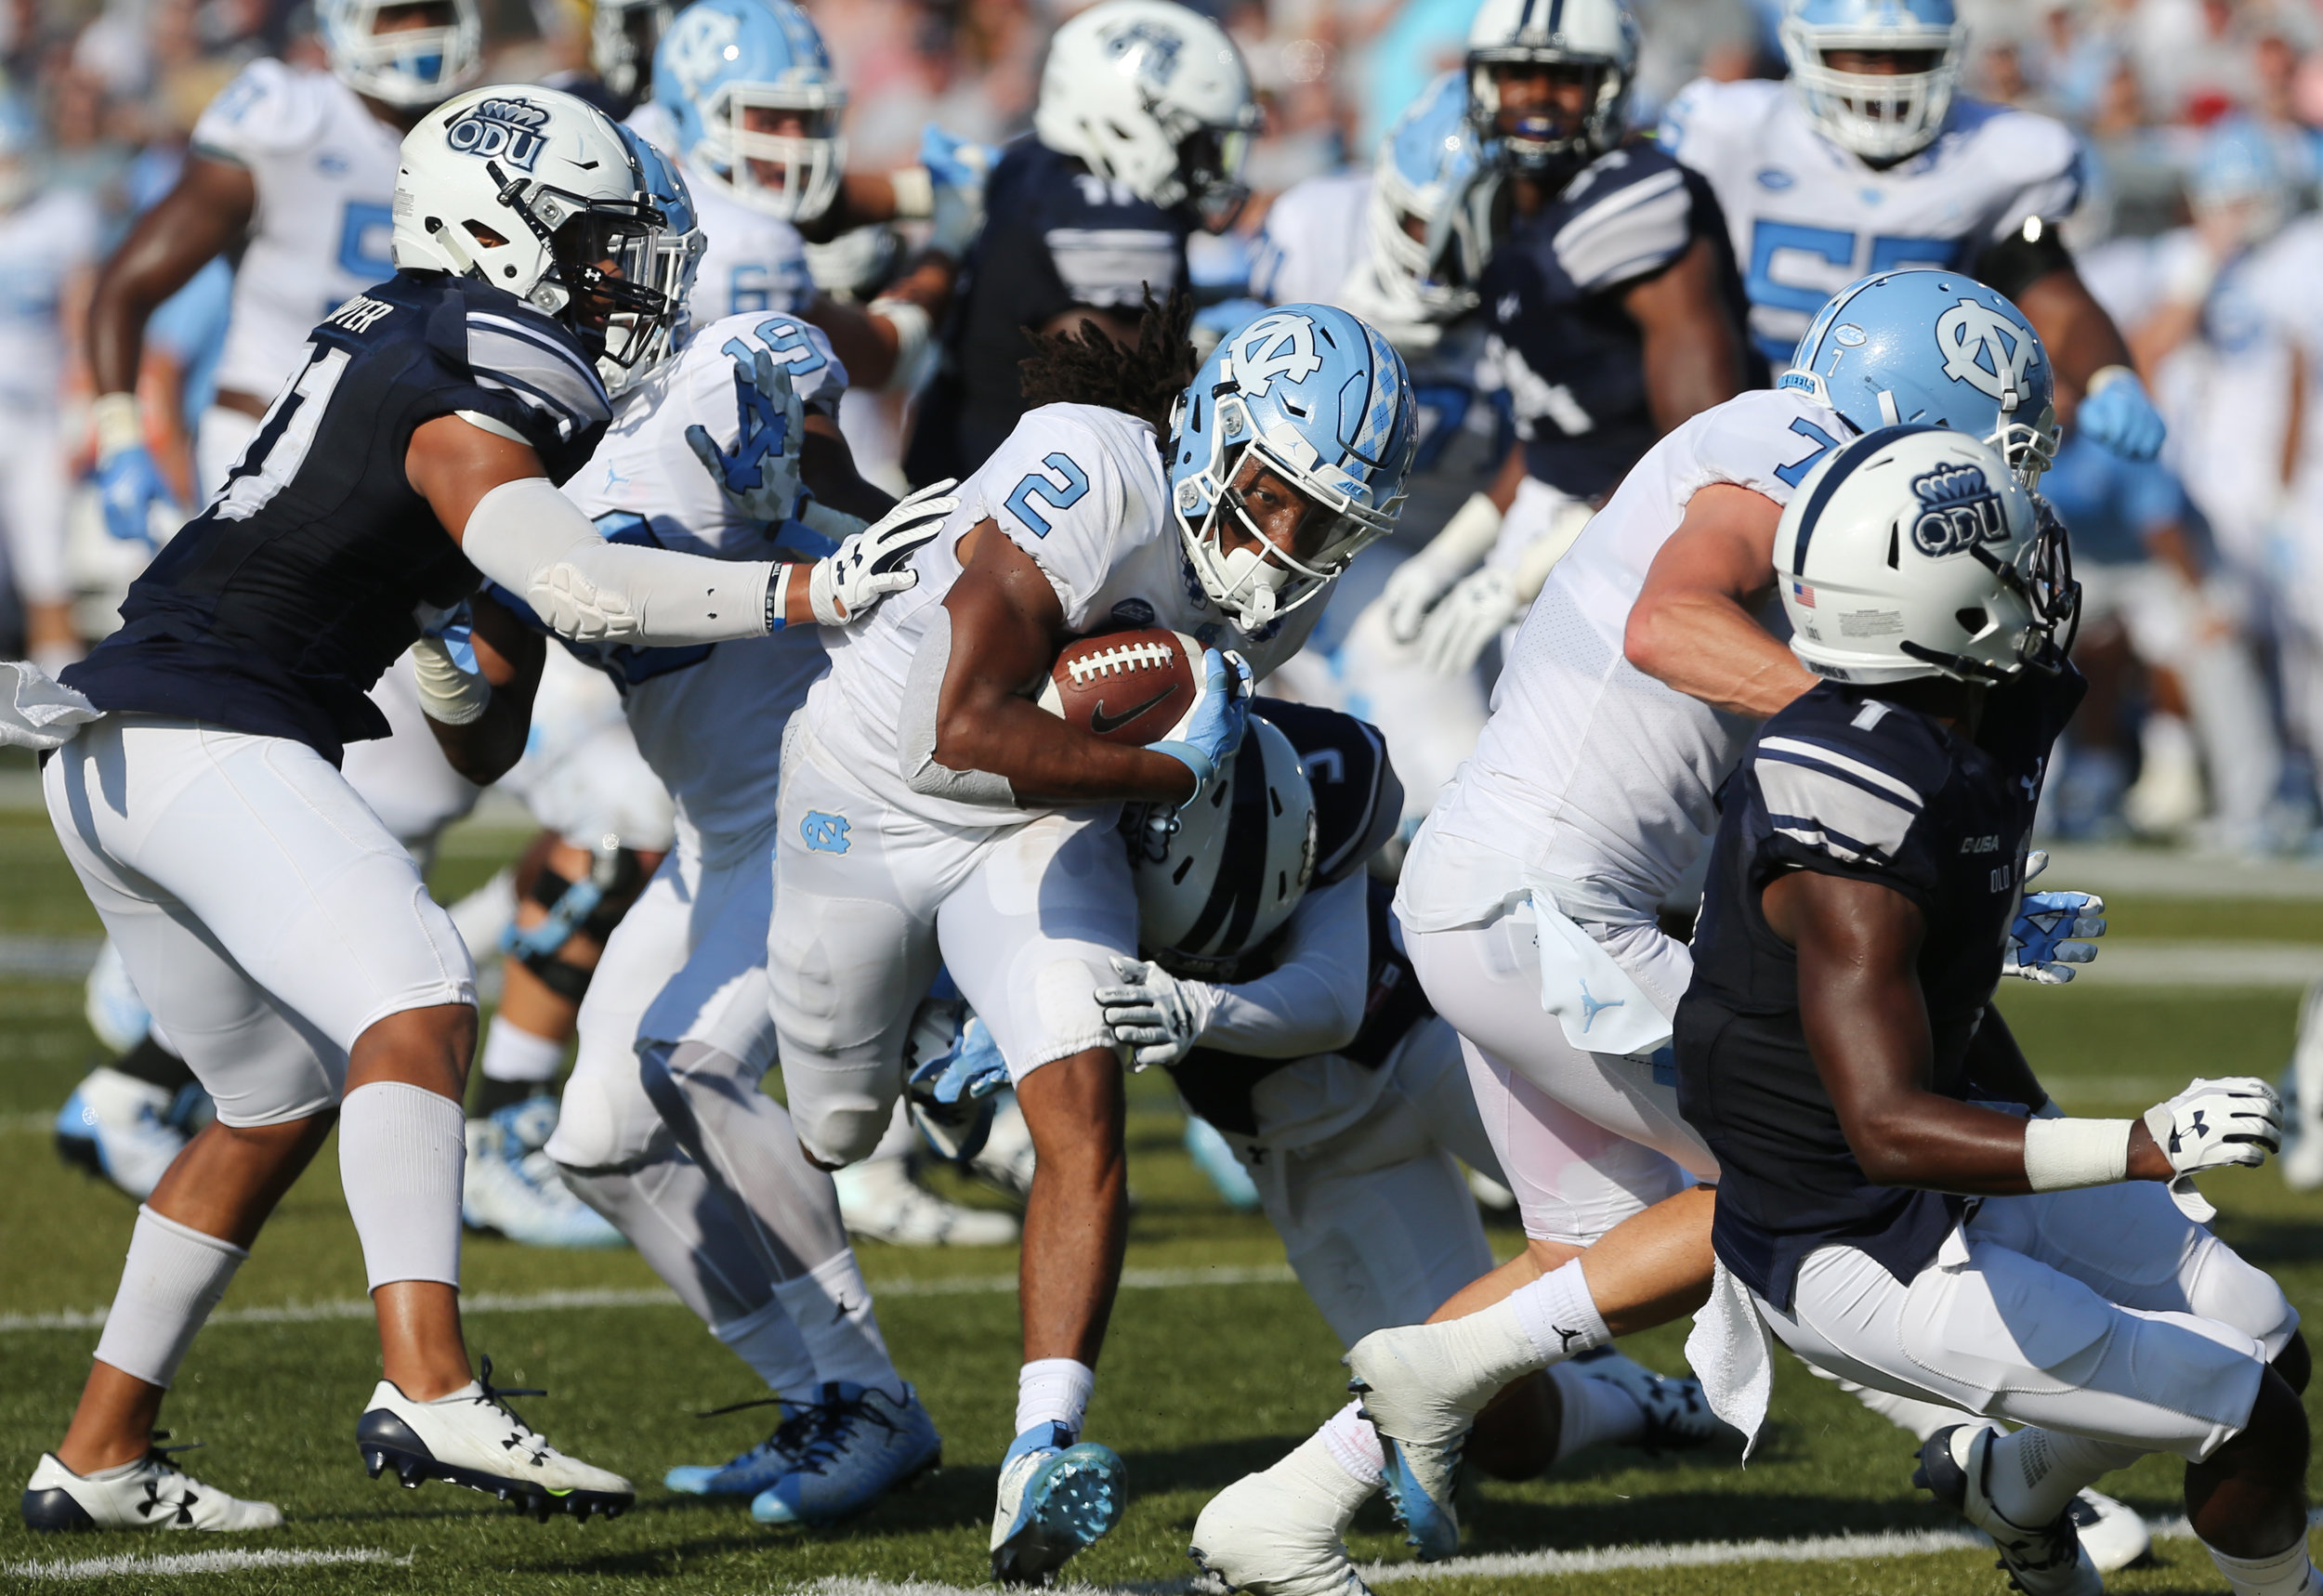 UNC's Jordan Brown (2) runs for a first down against the Old Dominion defense in the second half of an NCAA college football game, Saturday, Sept. 16, 2017 in Norfolk, Va.